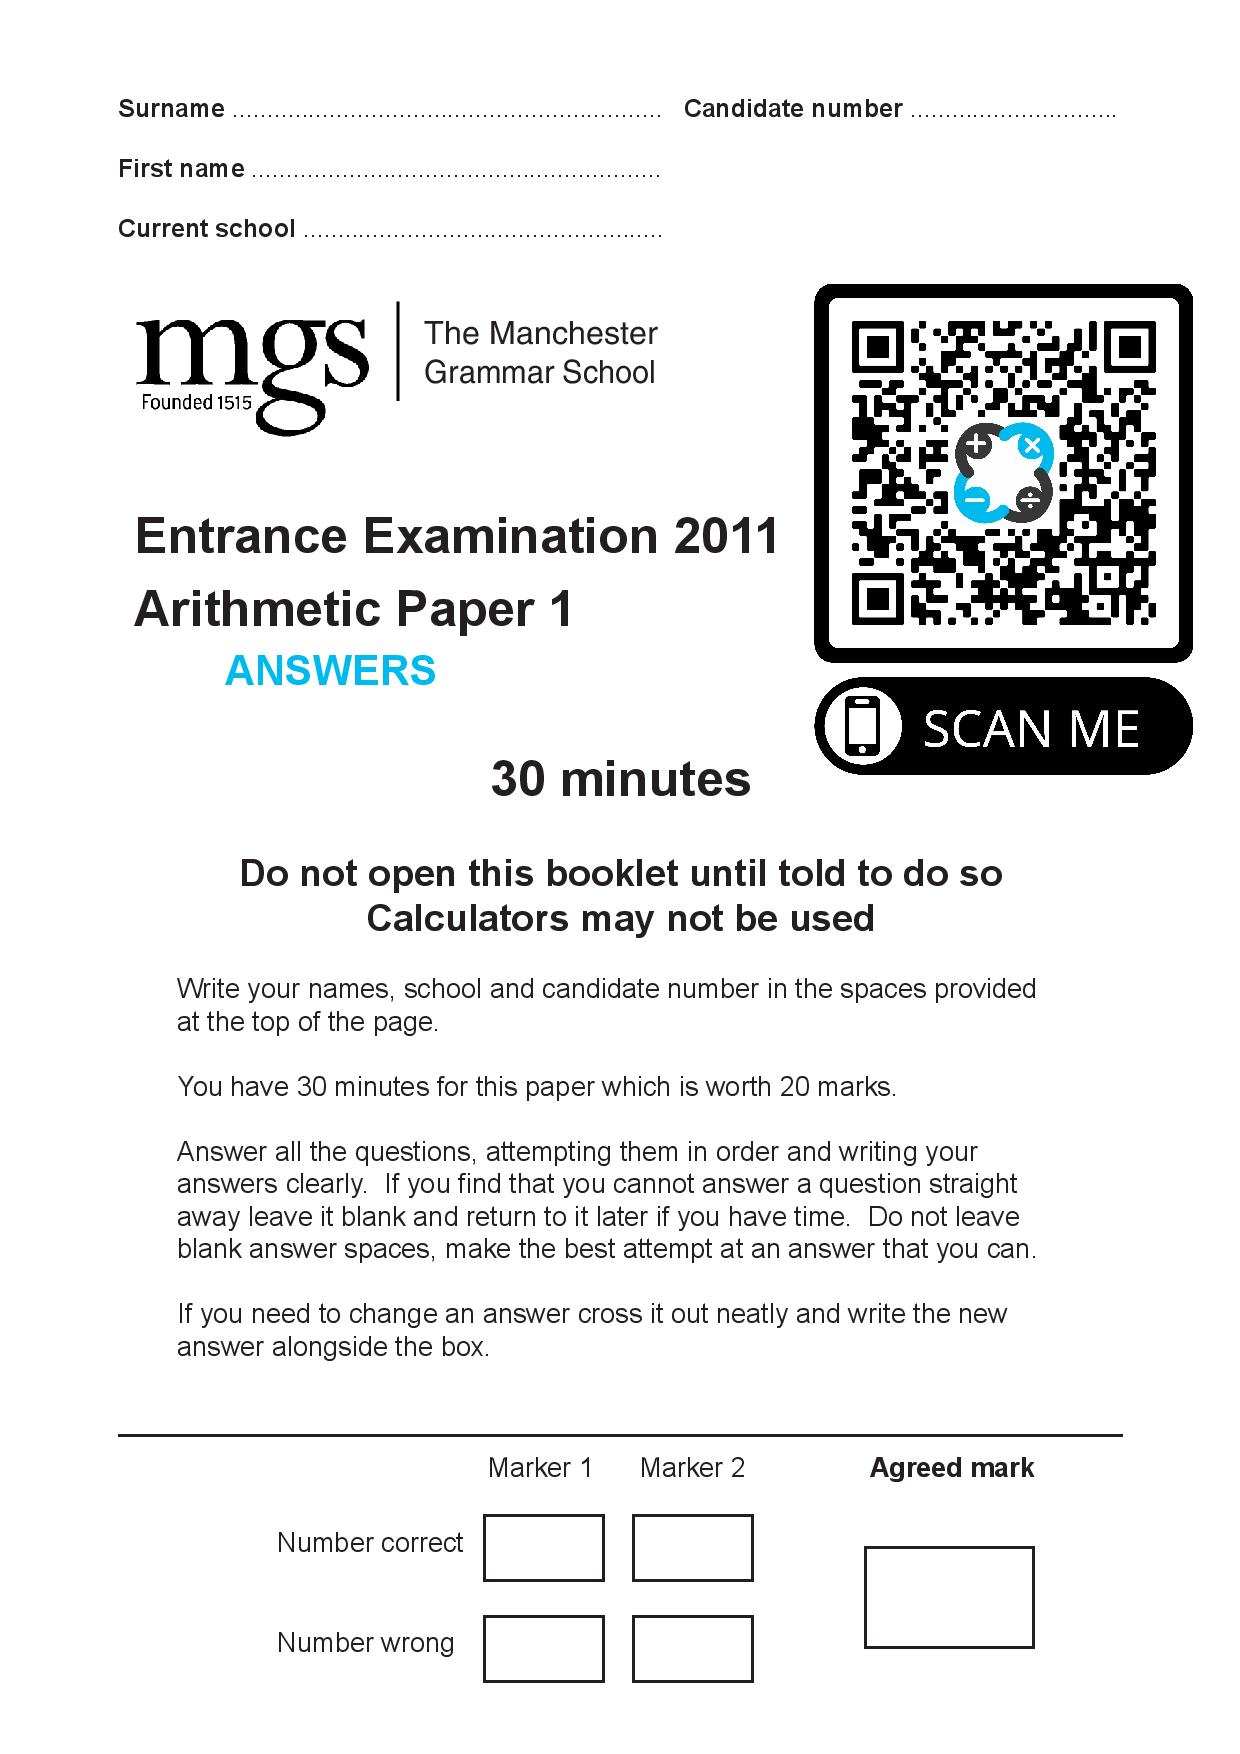 The Manchester Grammar School Entrance Examination 2011 Arithmetic Paper 1 Answer Paper page 001